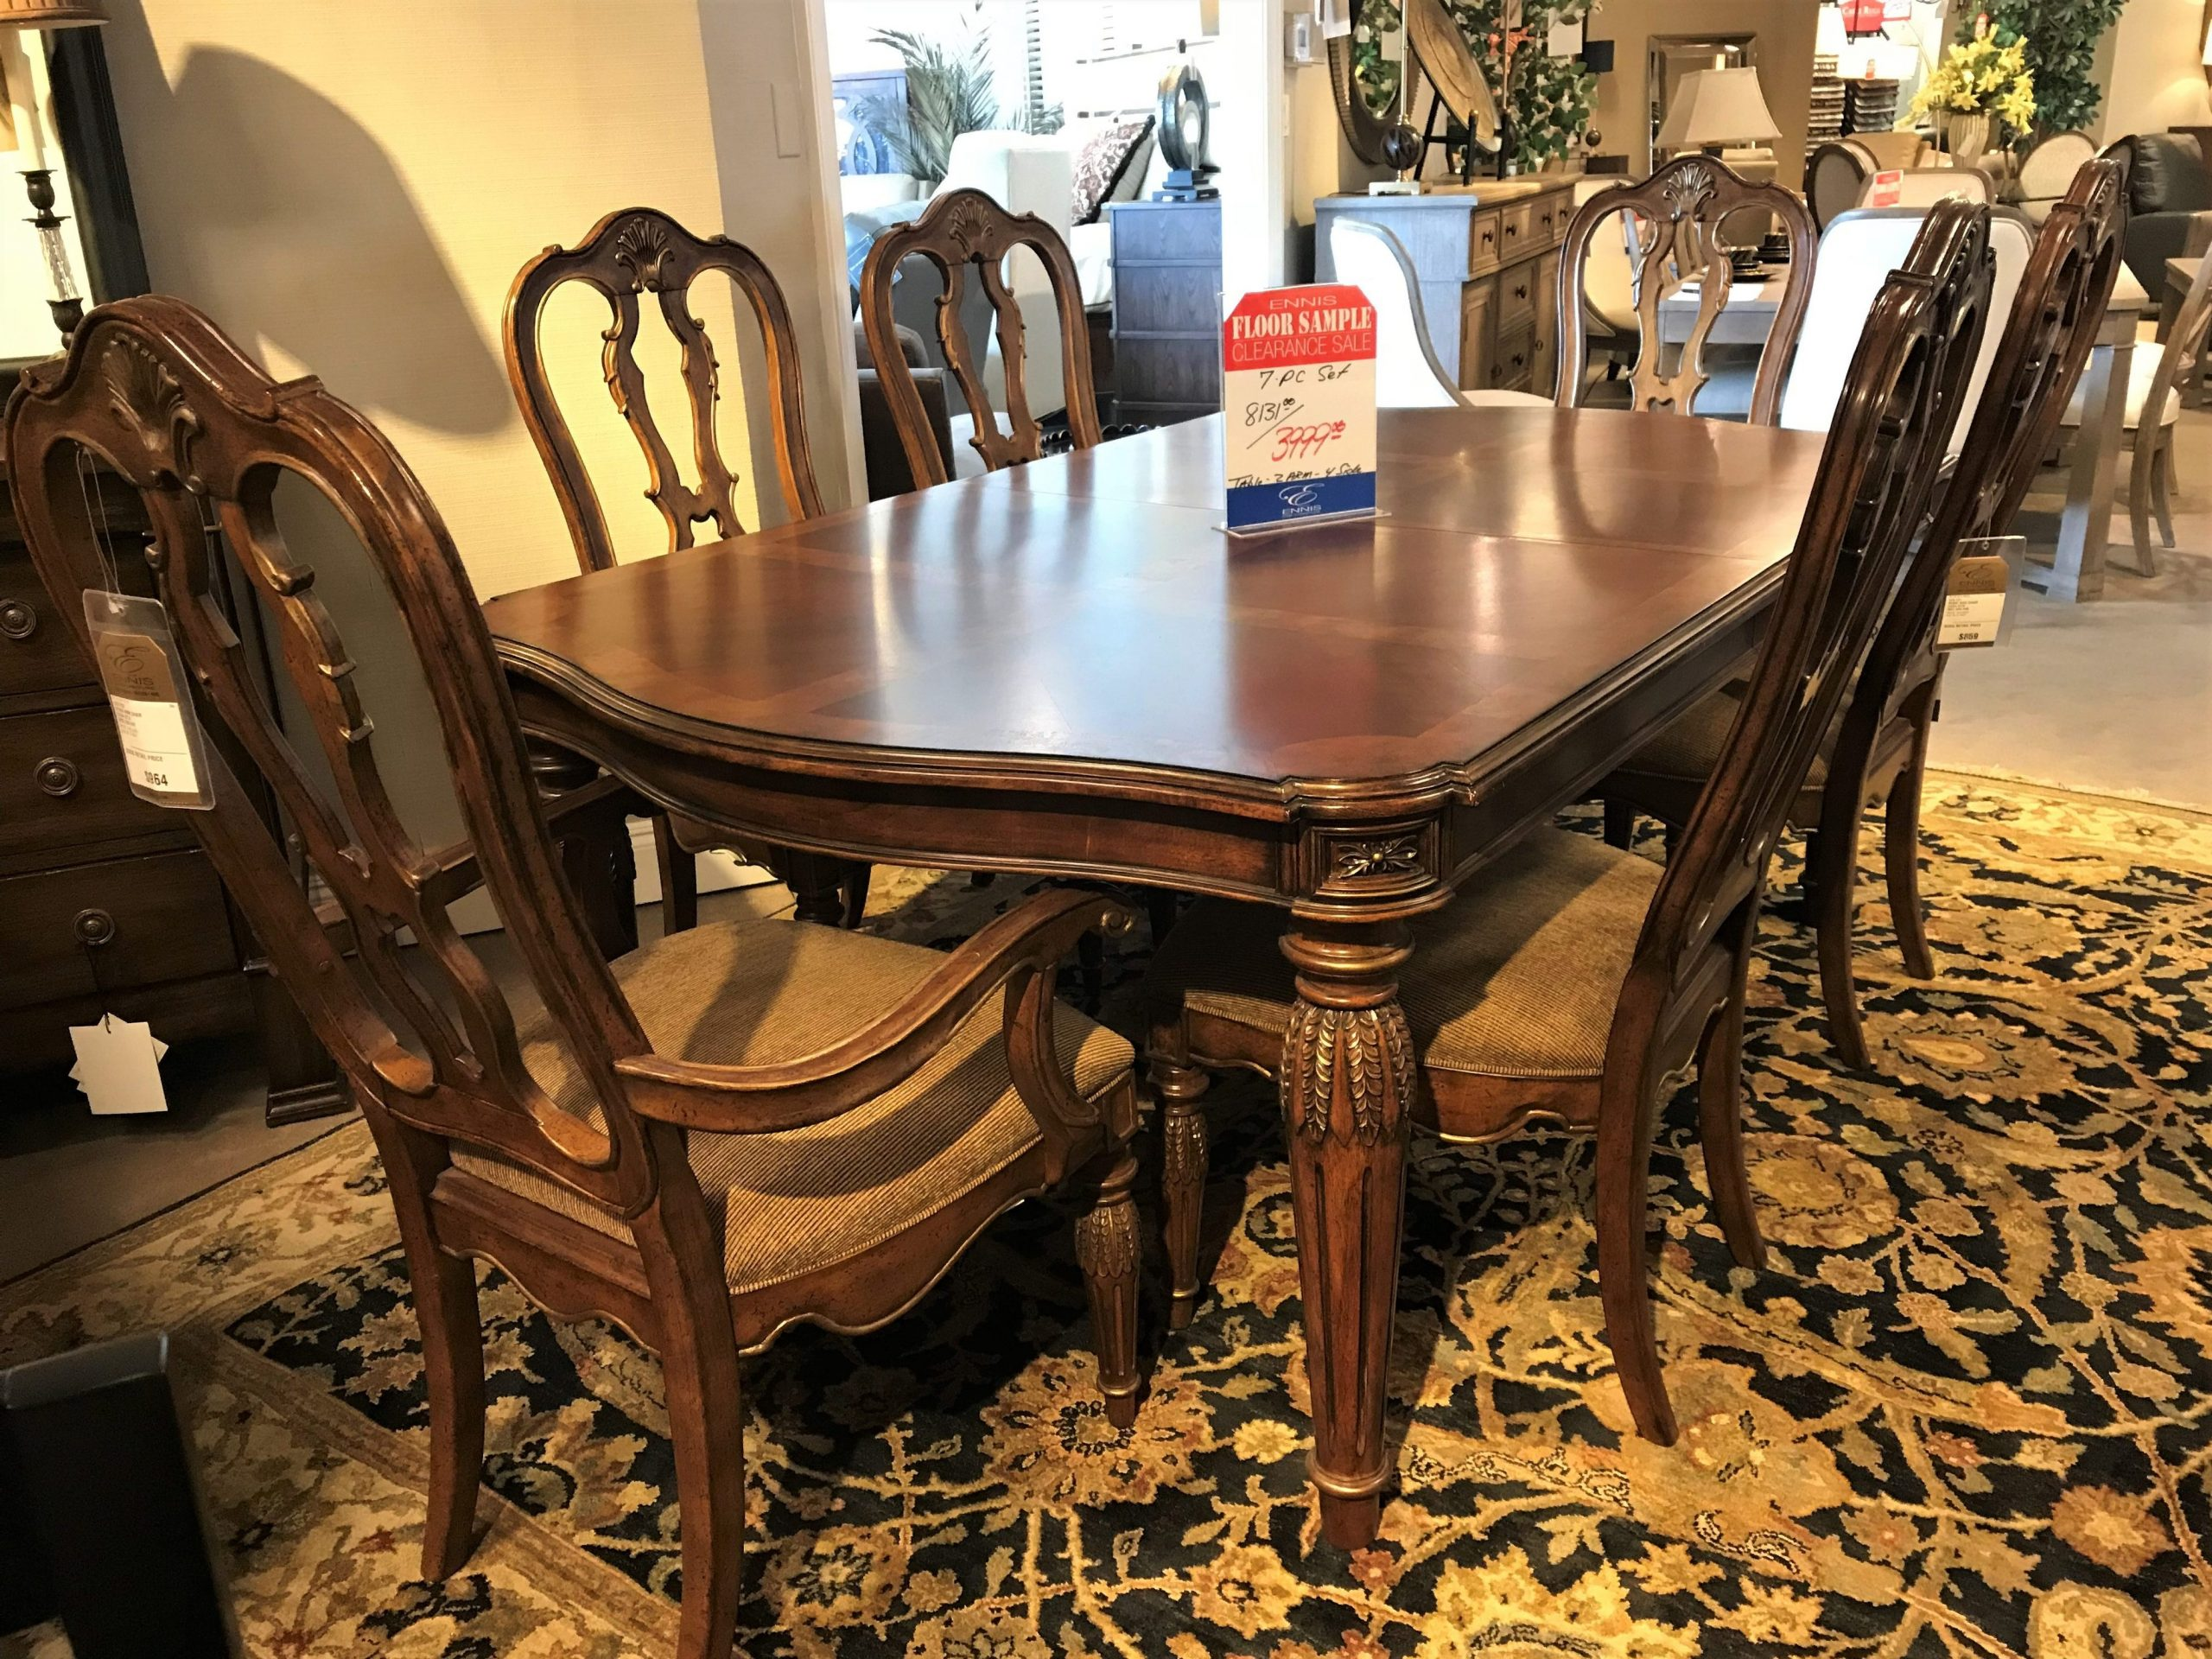 Drexel Heritage Giorando 7 Piece Dining Set Includes Table With Two 24